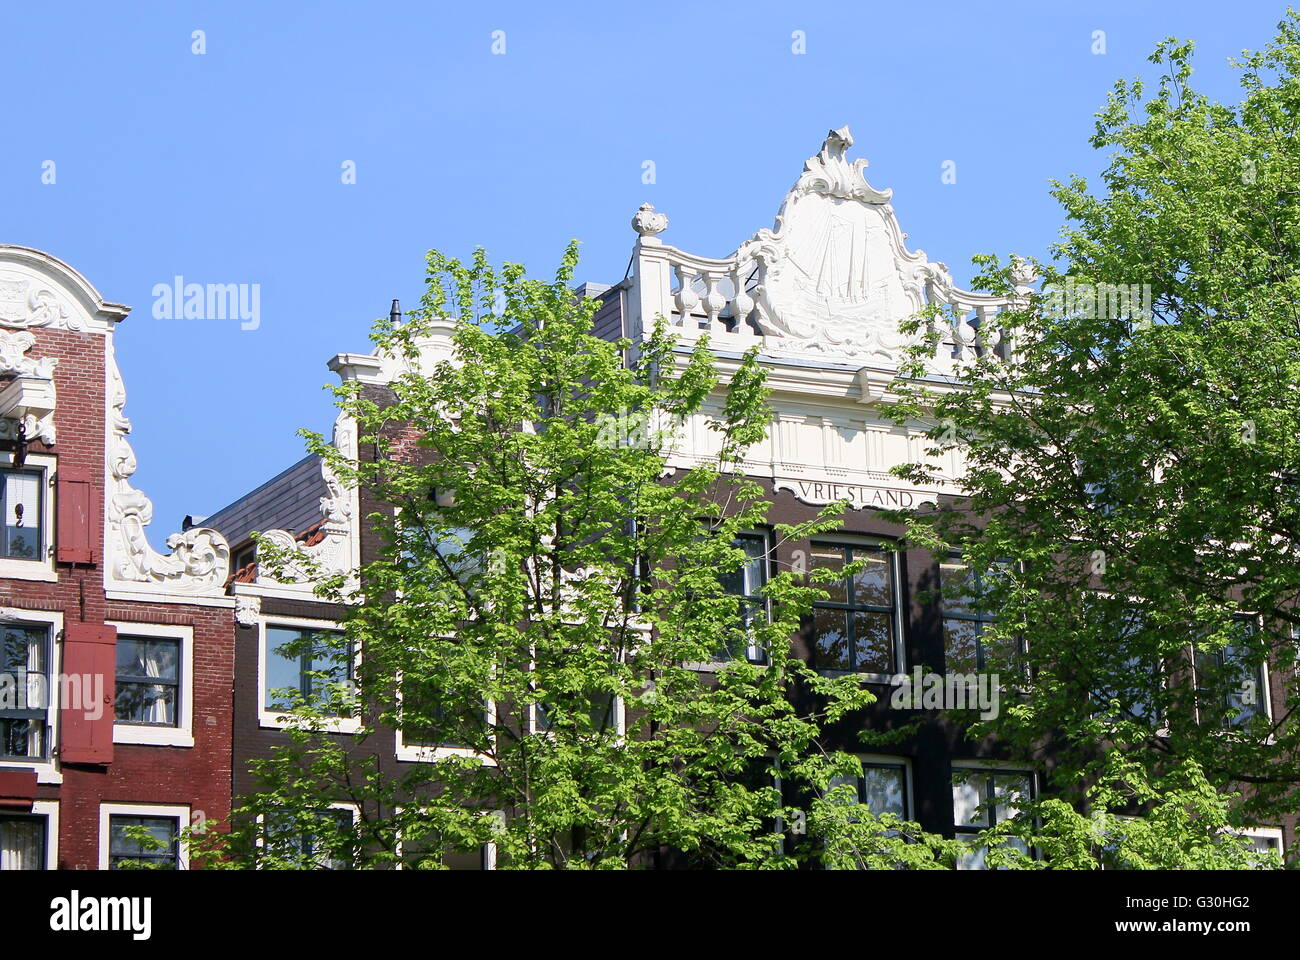 18th century monumental house Vriesland, Prinsengracht canal, Amsterdam, Netherlands. Upper gable decoration with - Stock Image